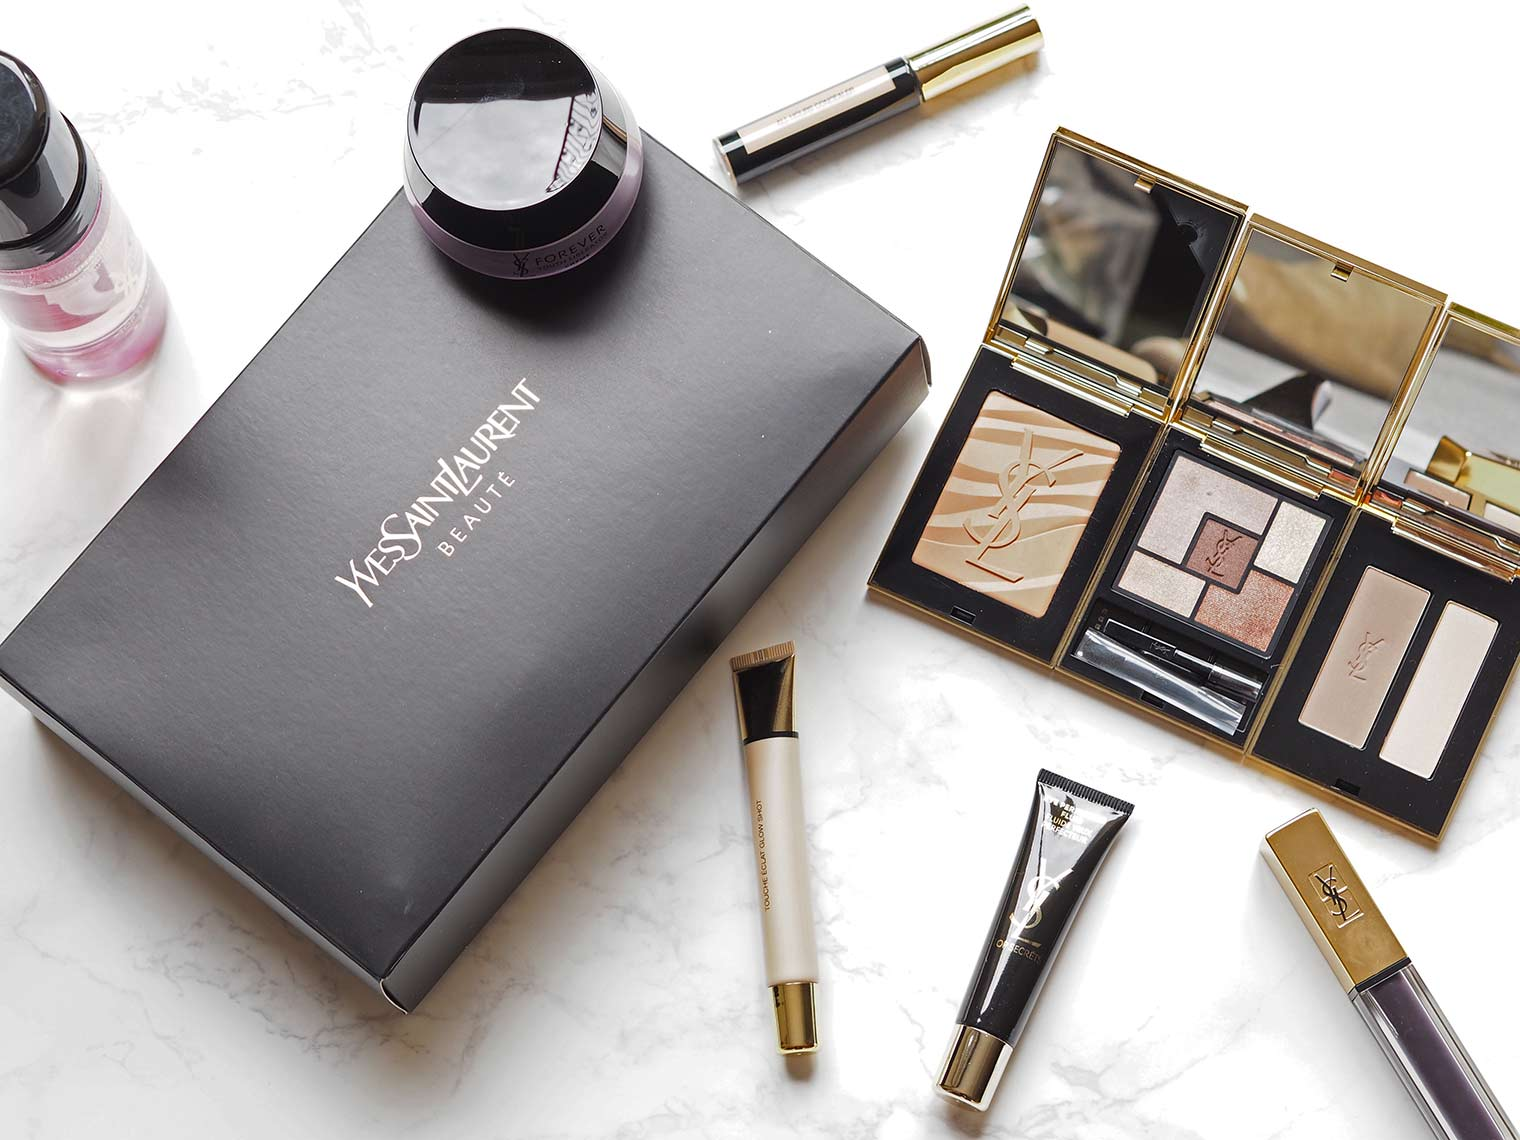 Petra from Chic Journal reviews YSL makeup products